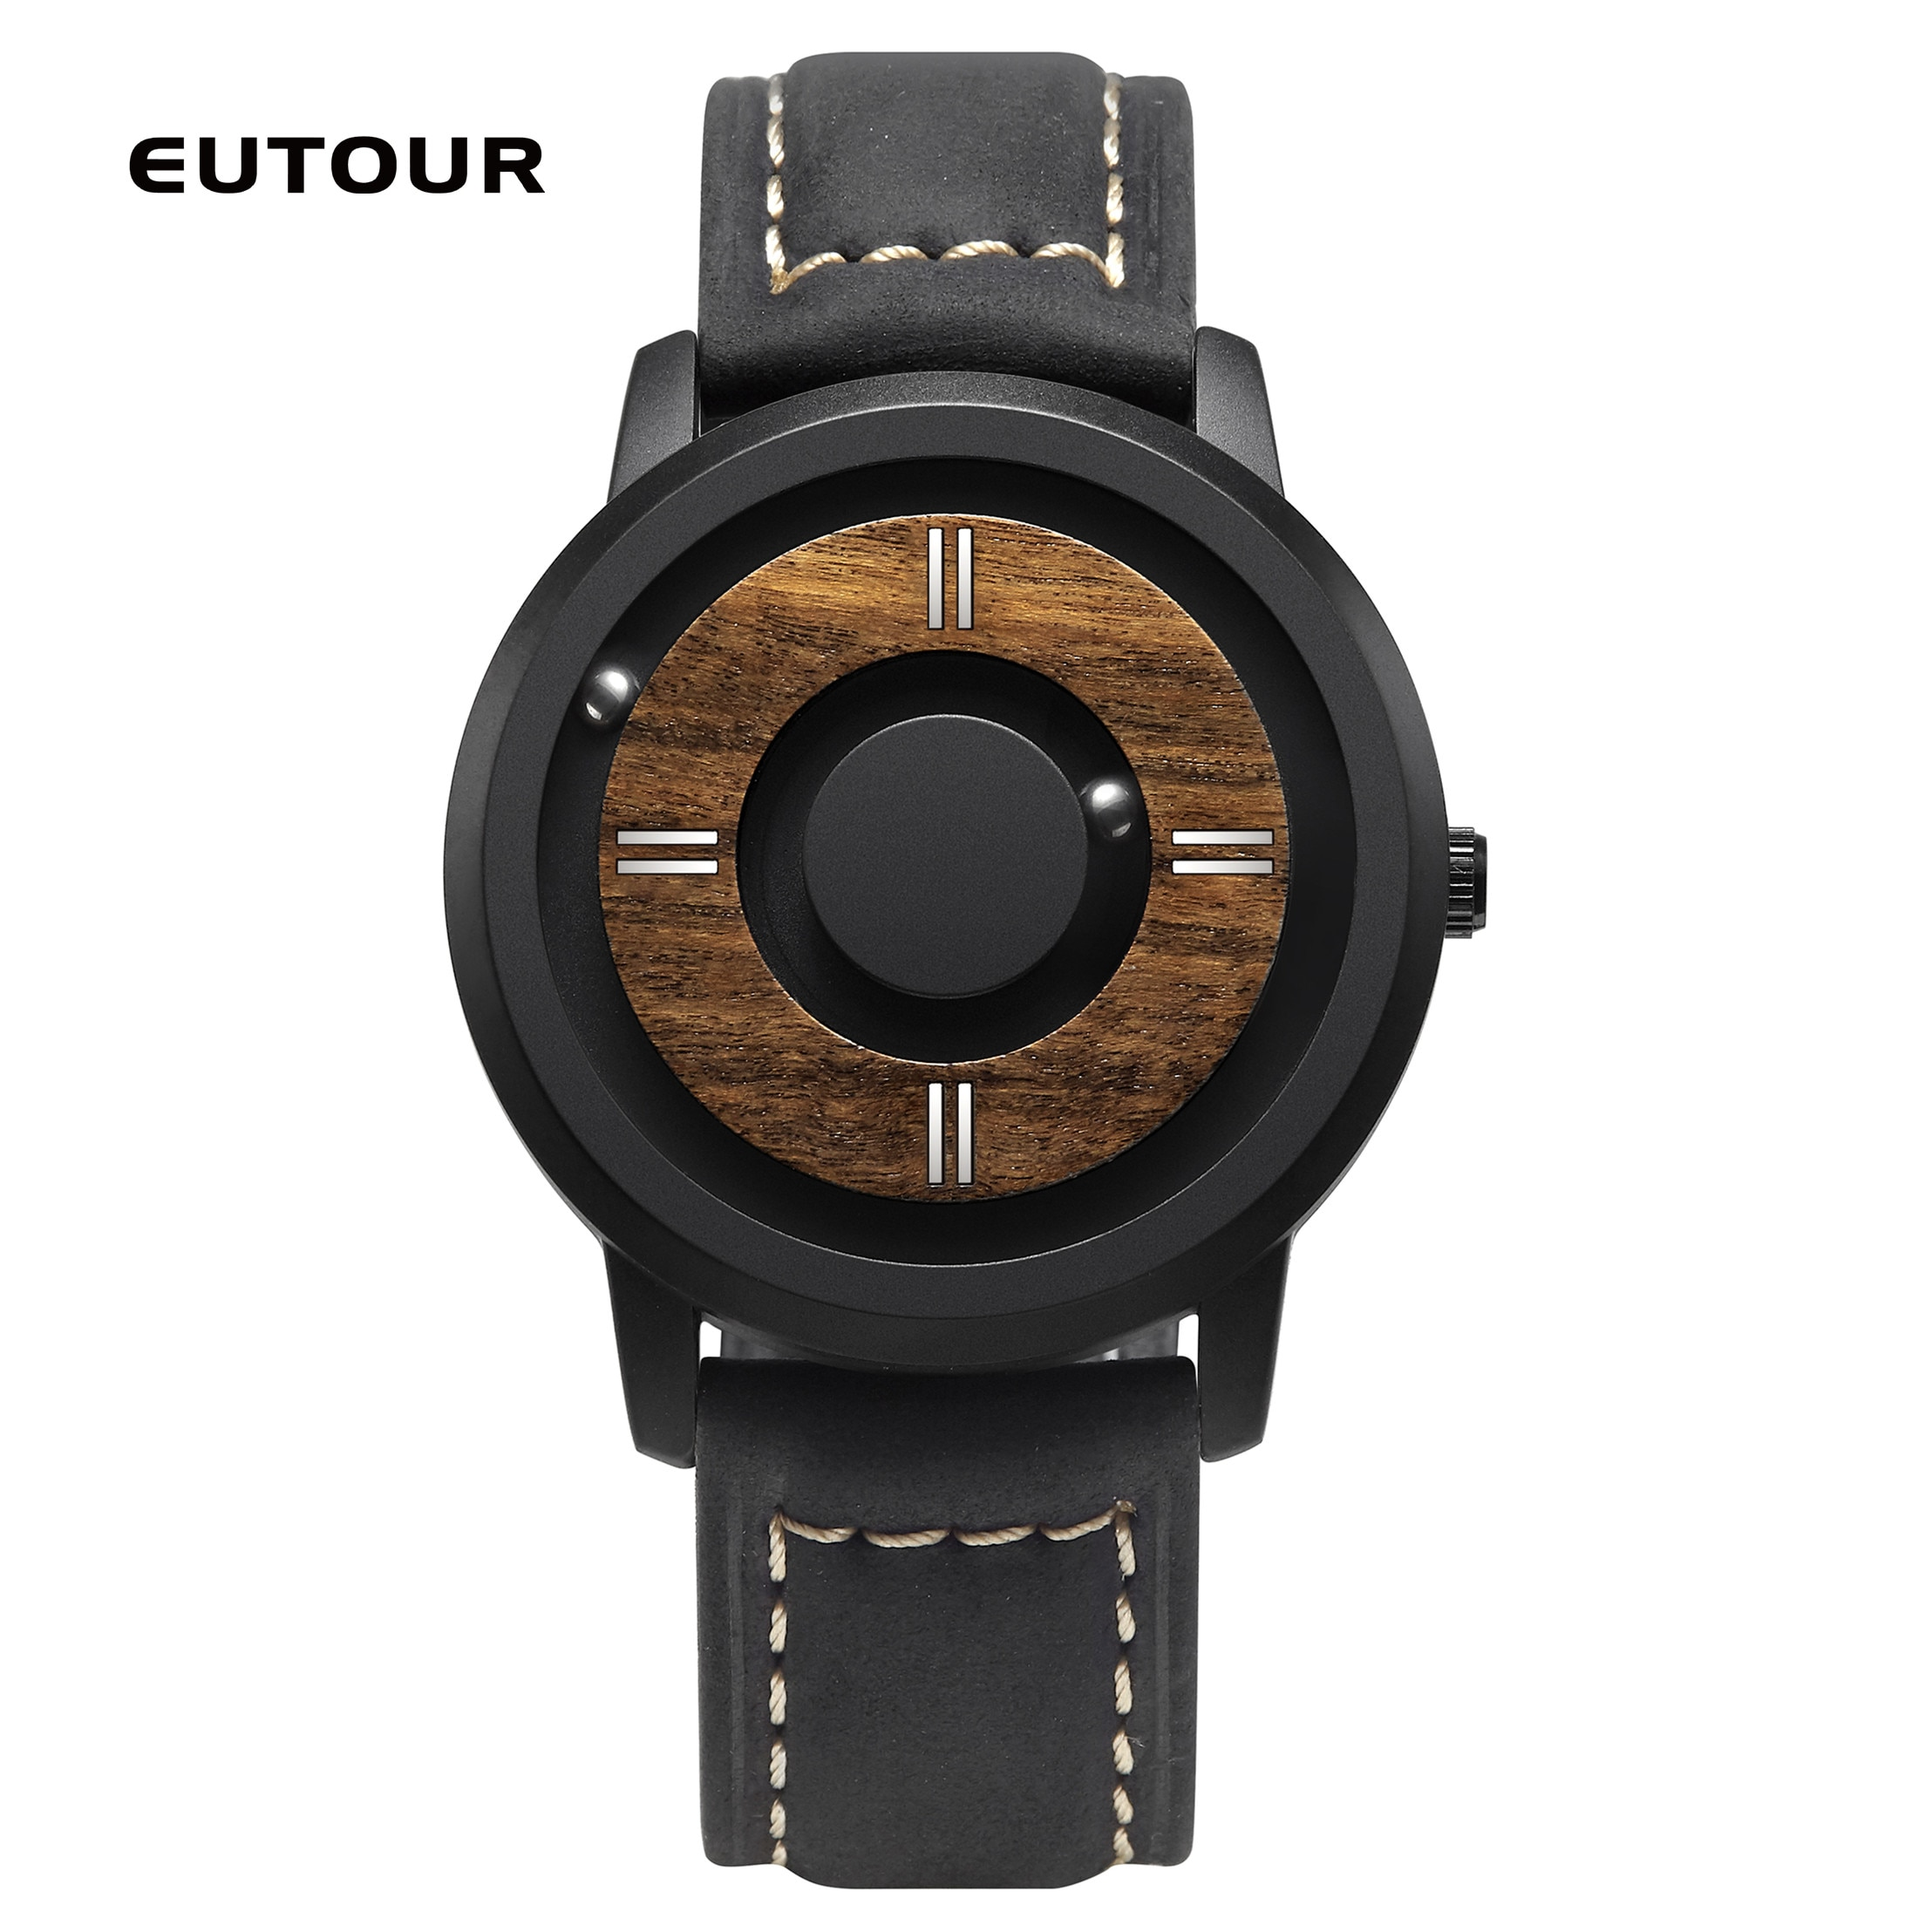 H0cac3b84b8a04c739635910087acabcaB - EUTOUR Magnetic ball Wooden dial watches Luxury Brand Mens fashion Casual Quartz Watch Simple Men Round leather strap Wristw